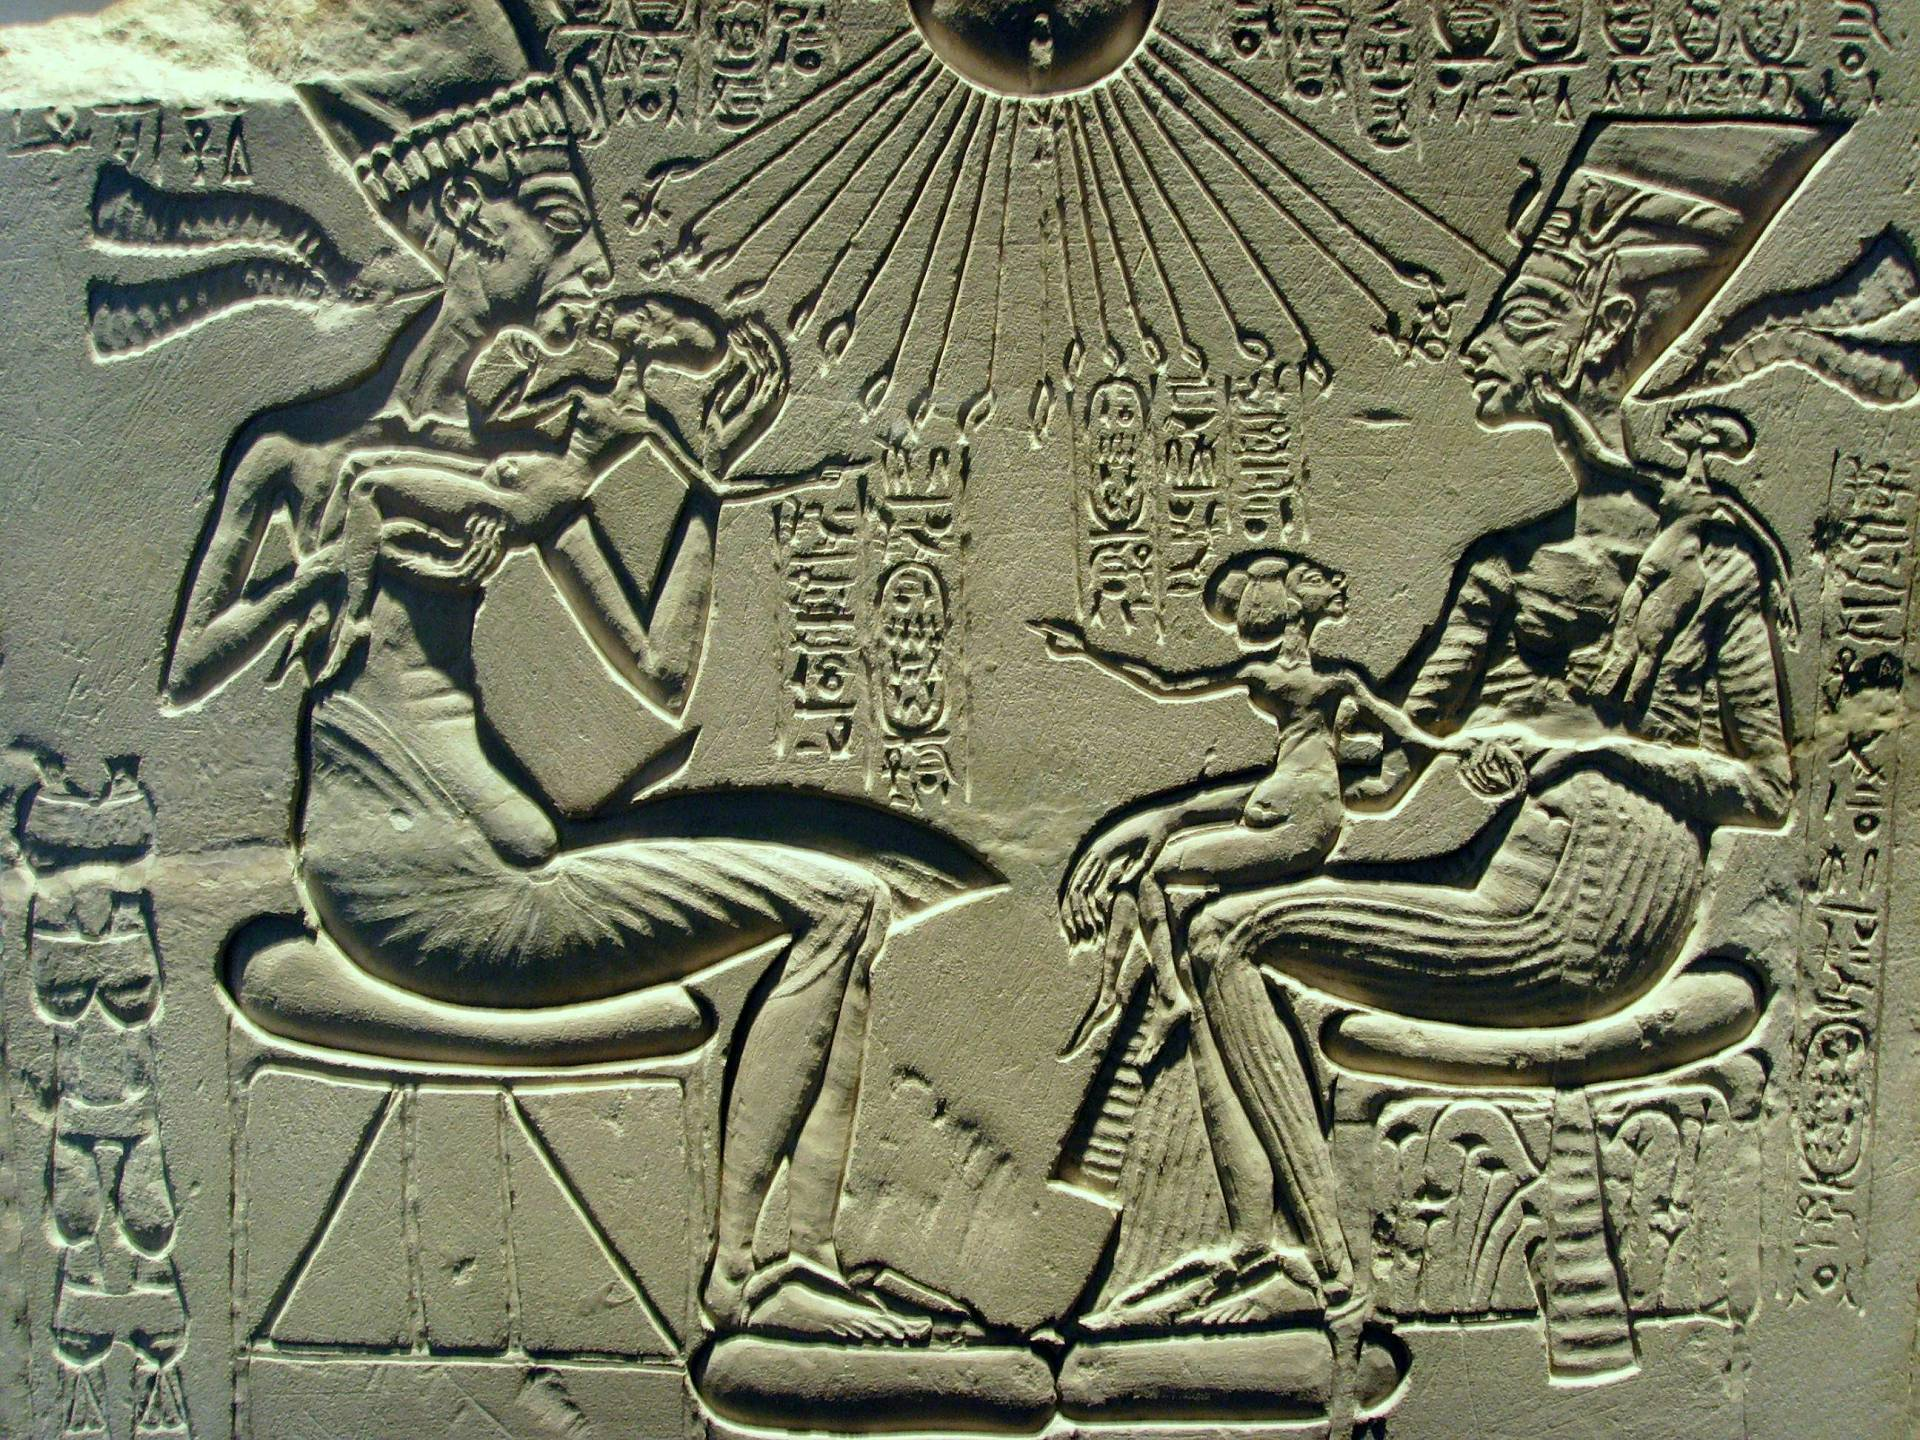 akhenaten and religion Amenhotep iv, also known as the pharaoh akhenaten, was destined to be remembered for his attempt at a religious conversion of ancient egypt one that saw the old gods put aside and replaced by a si.